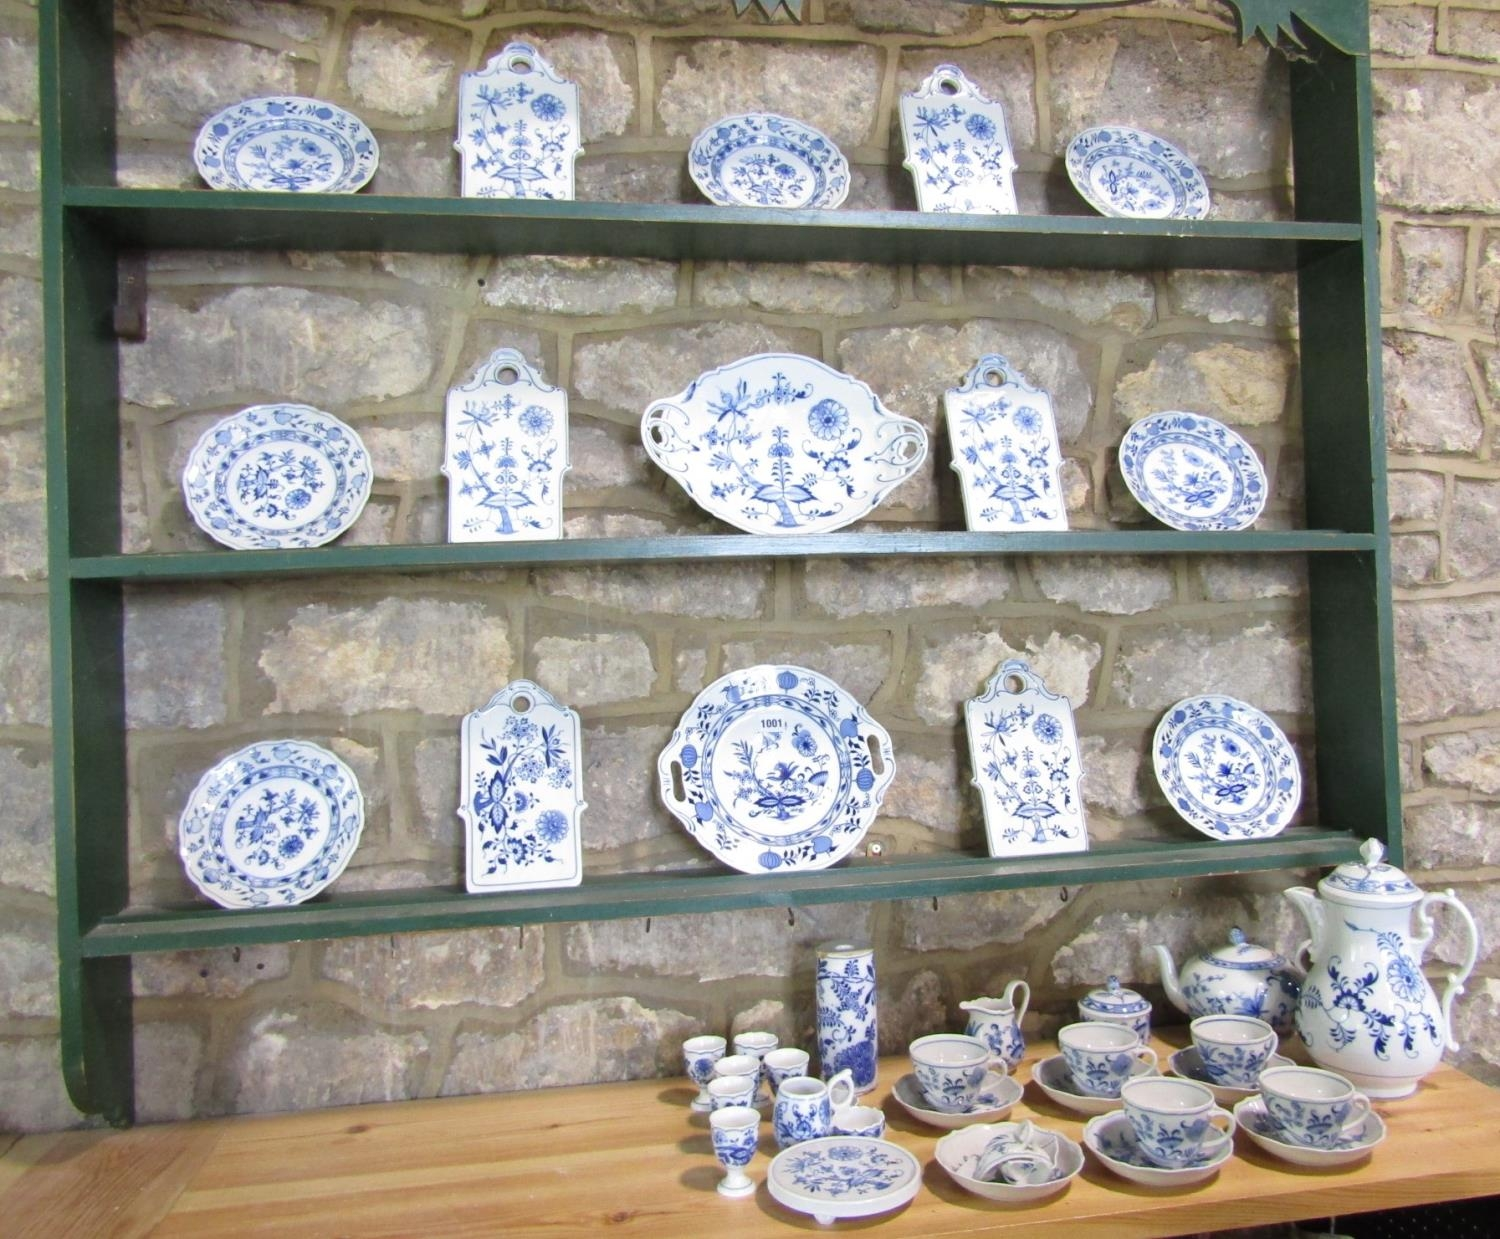 A quantity of German blue and white printed wares with stylised floral detail by Hutschenreuther, - Bild 2 aus 3